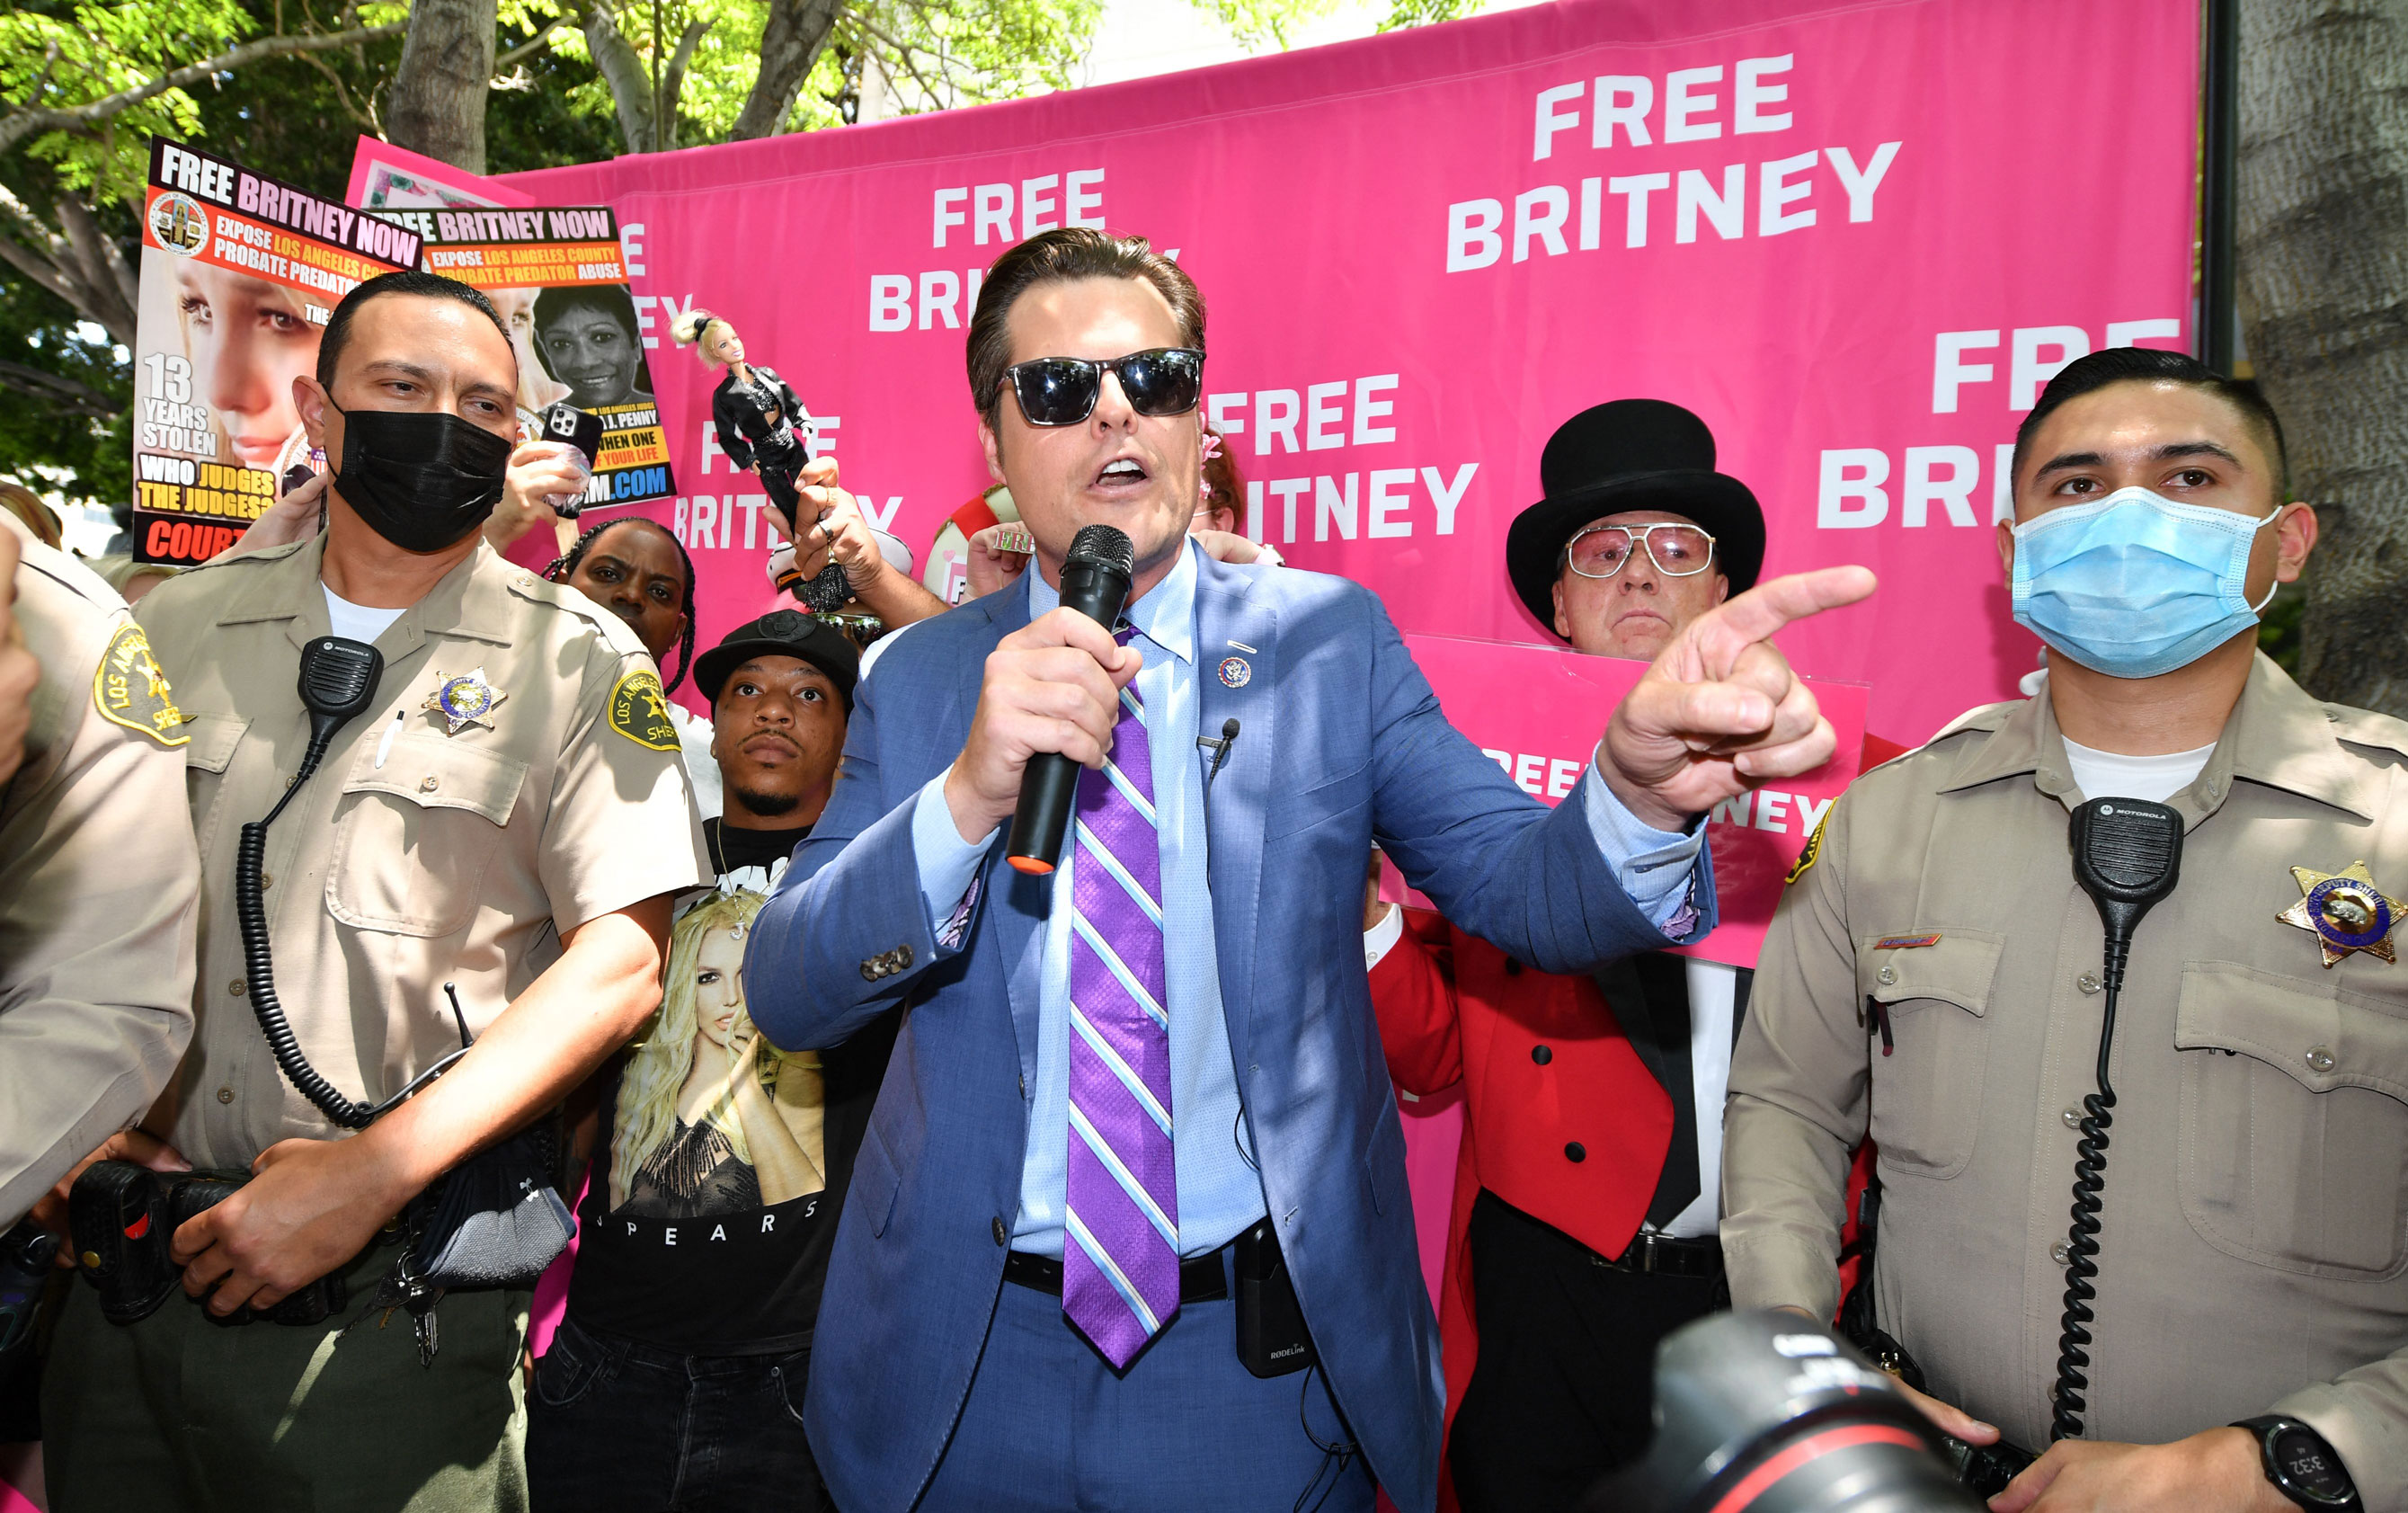 Police officers basal   adjacent  to US Representative Matt Gaetz arsenic  helium  speaks to fans and supporters of Britney Spears gathered extracurricular  the Los Angeles County Courthouse successful  Los Angeles, connected  Wednesday, July 14, during a scheduled proceeding  successful  the Britney Spears guardianship case.